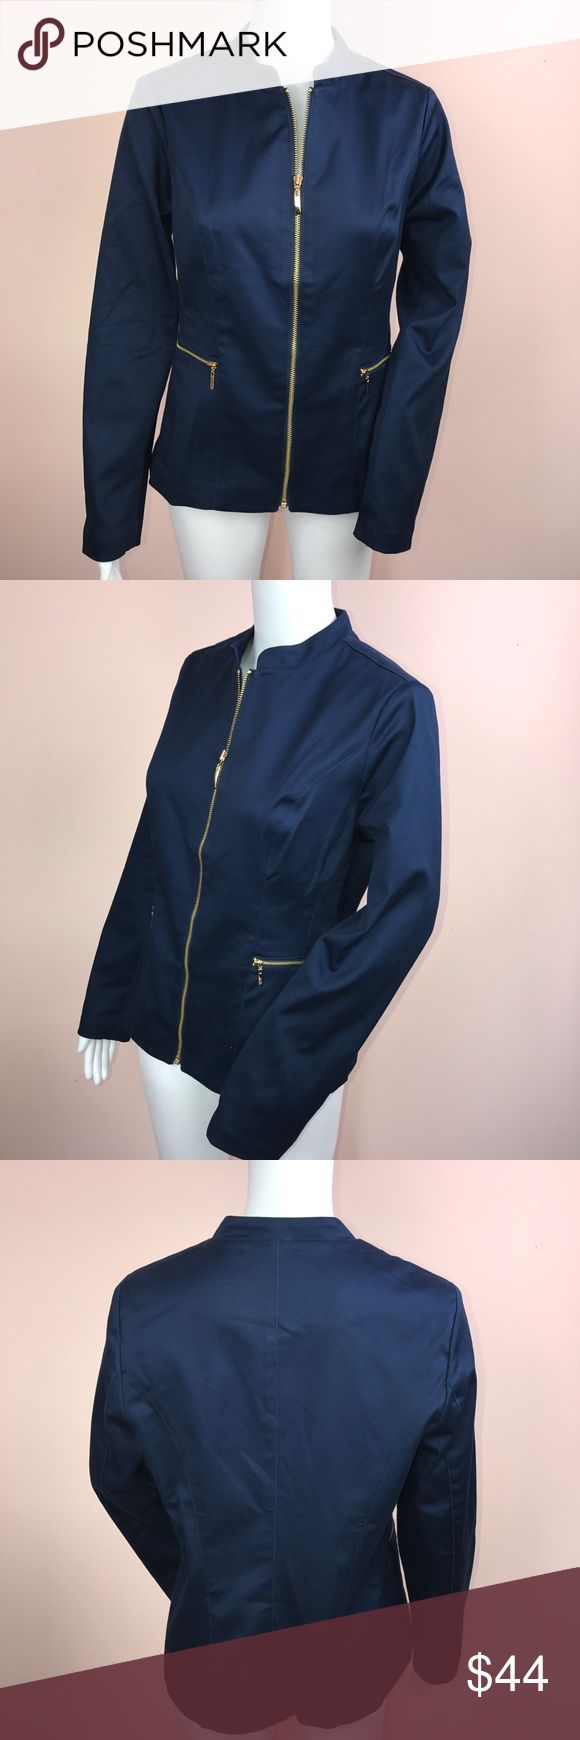 "Charter Club Blazer Size 6 Blue Zip Up New This listing is for a Charter Club Womens Jacket 6 Blue Zip Up Blazer Career NEW.  MSRP: $89.00 gold exposed zip up closure, gold zip up front pockets 60% cotton 37% polyester 3% spandex machine wash cold, tumble dry low armpit to armpit 19"" length 24"" shoulder to shoulder 15"" sleeve length 24""  sku: 010218-FOX1217-0842 Charter Club Jackets & Coats Blazers"